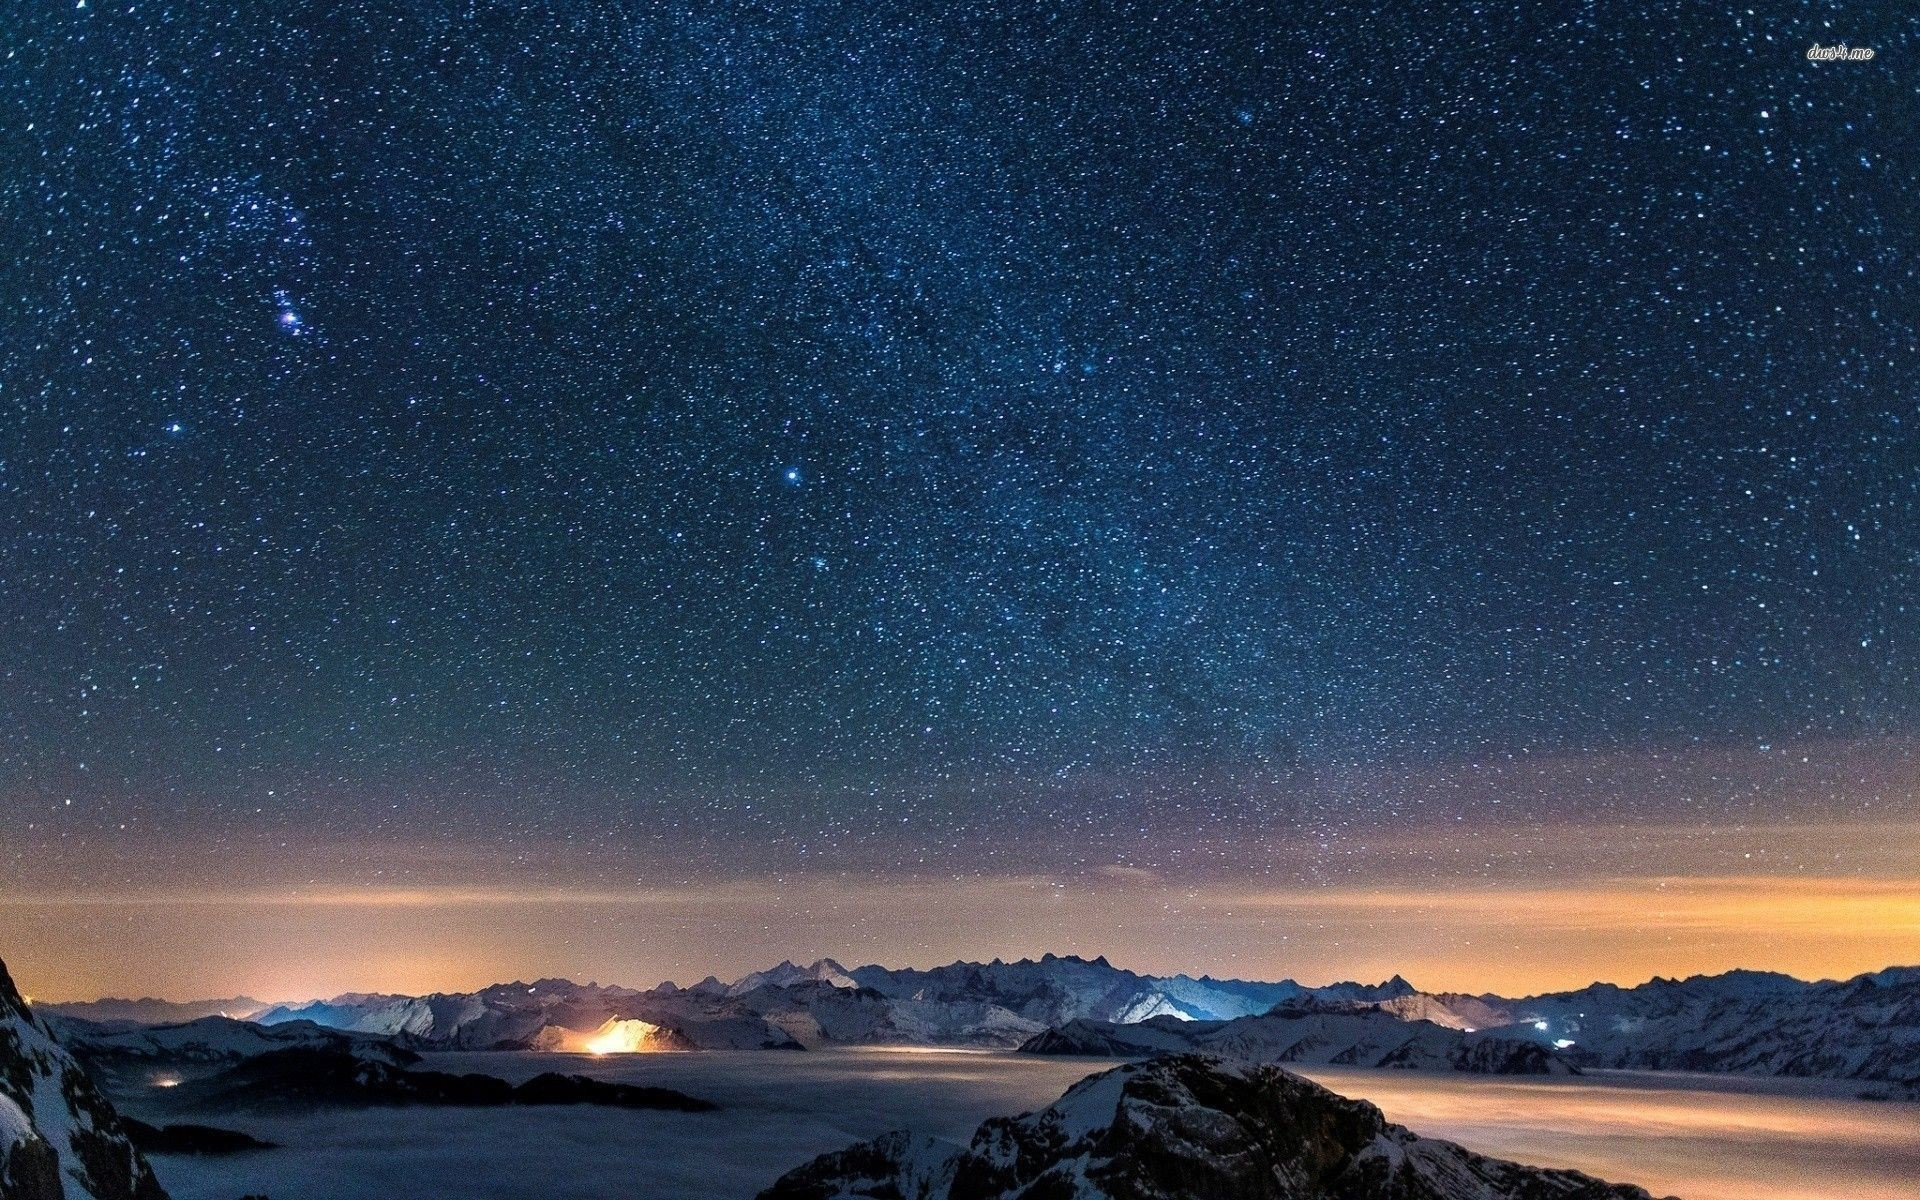 Starry Night Sky With Moon – wallpaper.